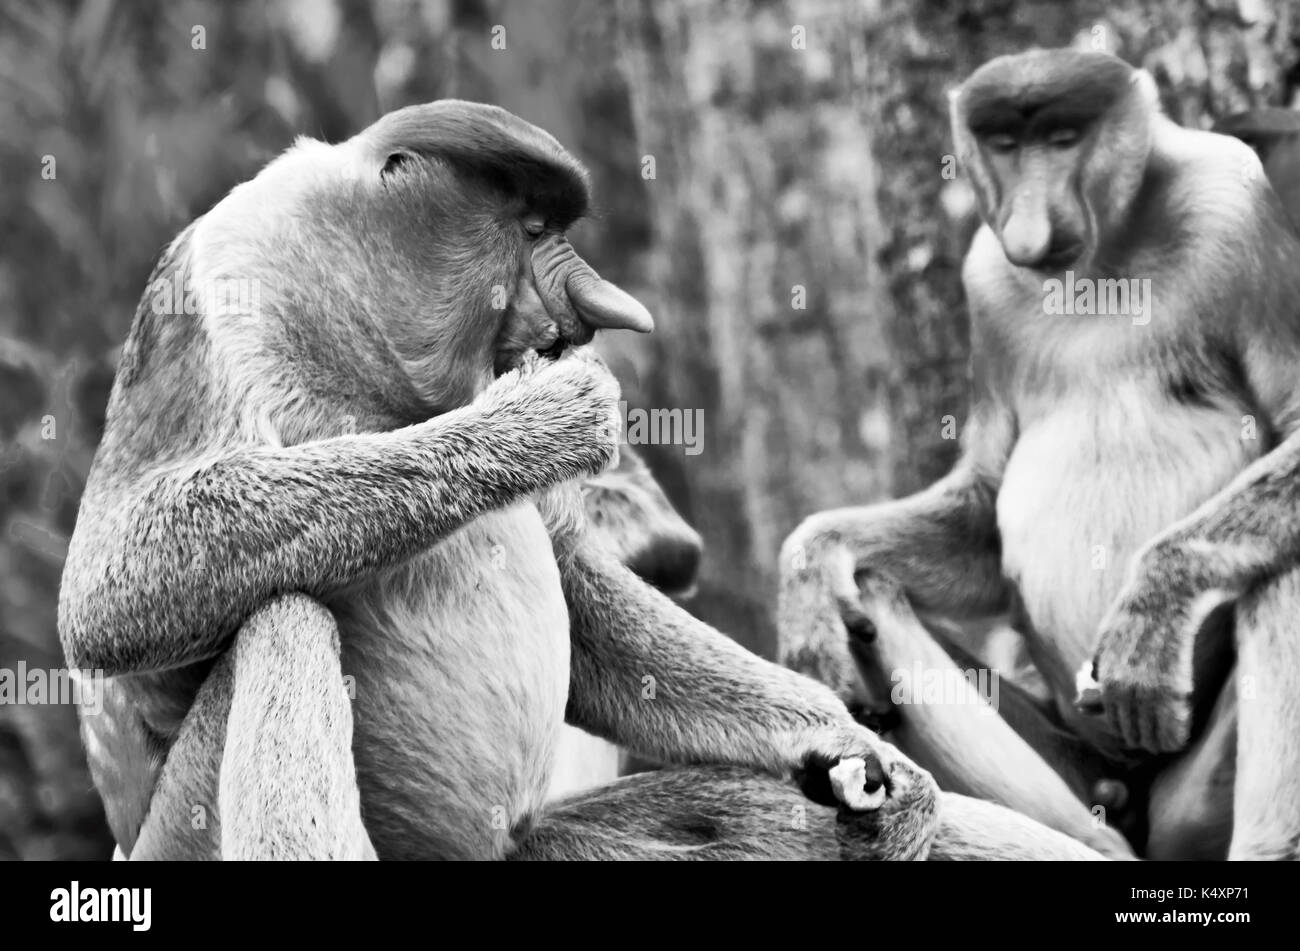 Nosed monkeys in the jungles of Borneo (Kalimantan) - Stock Image